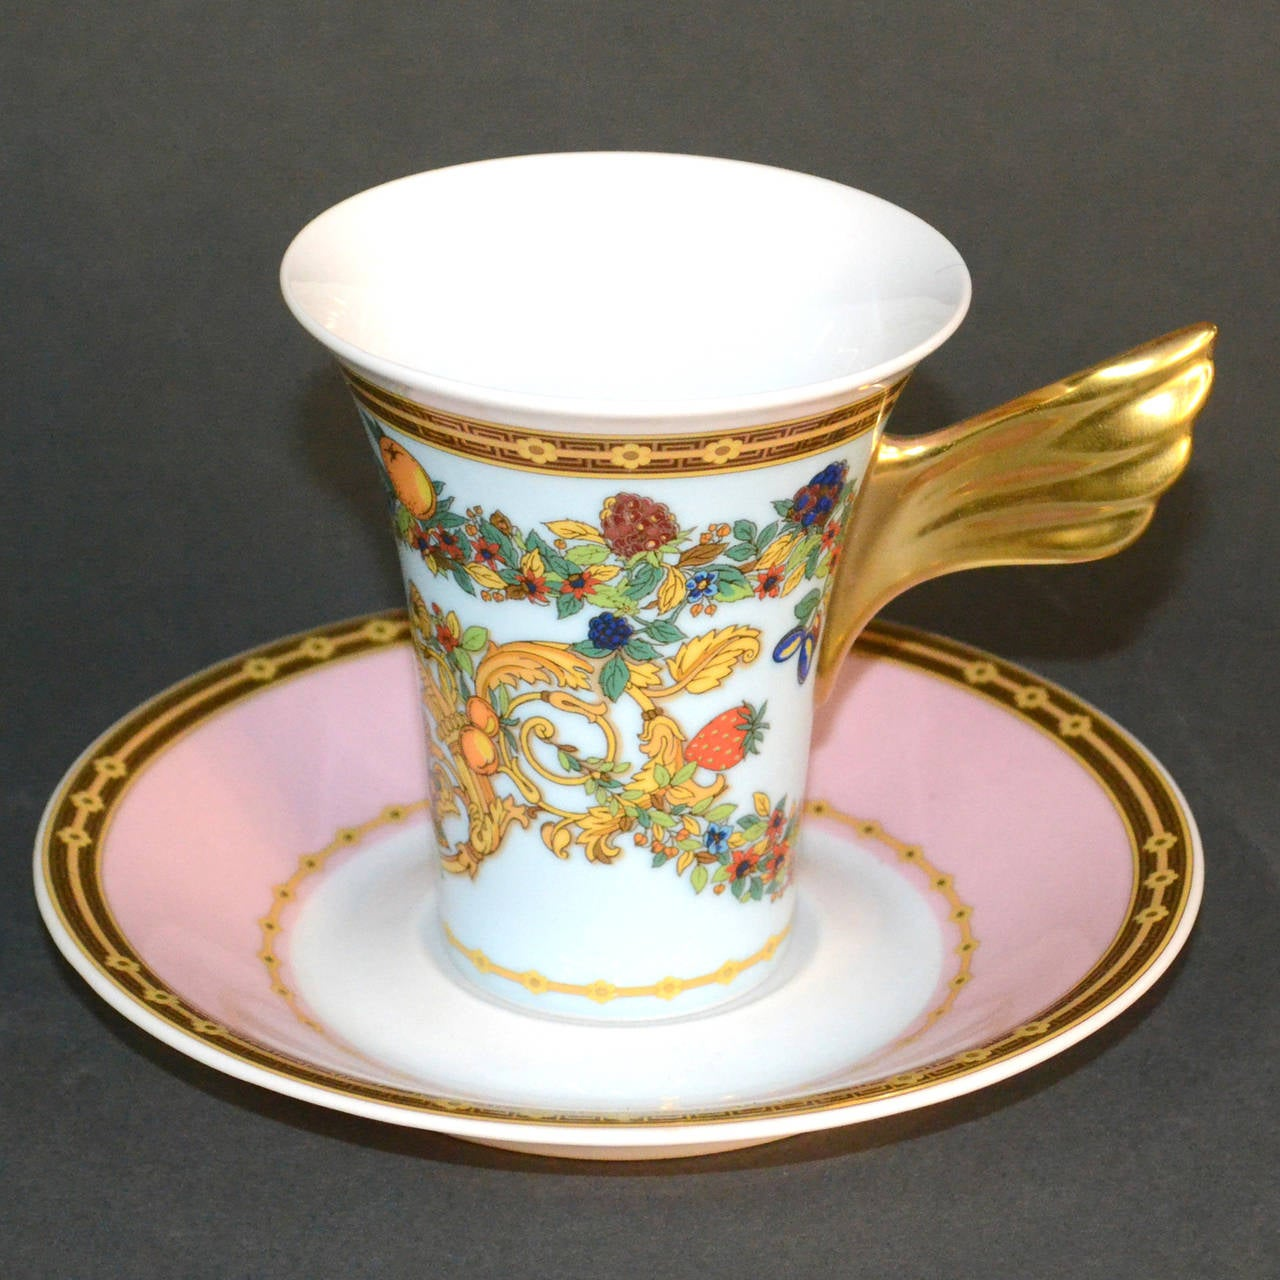 Le Jardin de Versace China Dinnerware Set at 1stdibs & Jardin de Versace China Dinnerware Set at 1stdibs